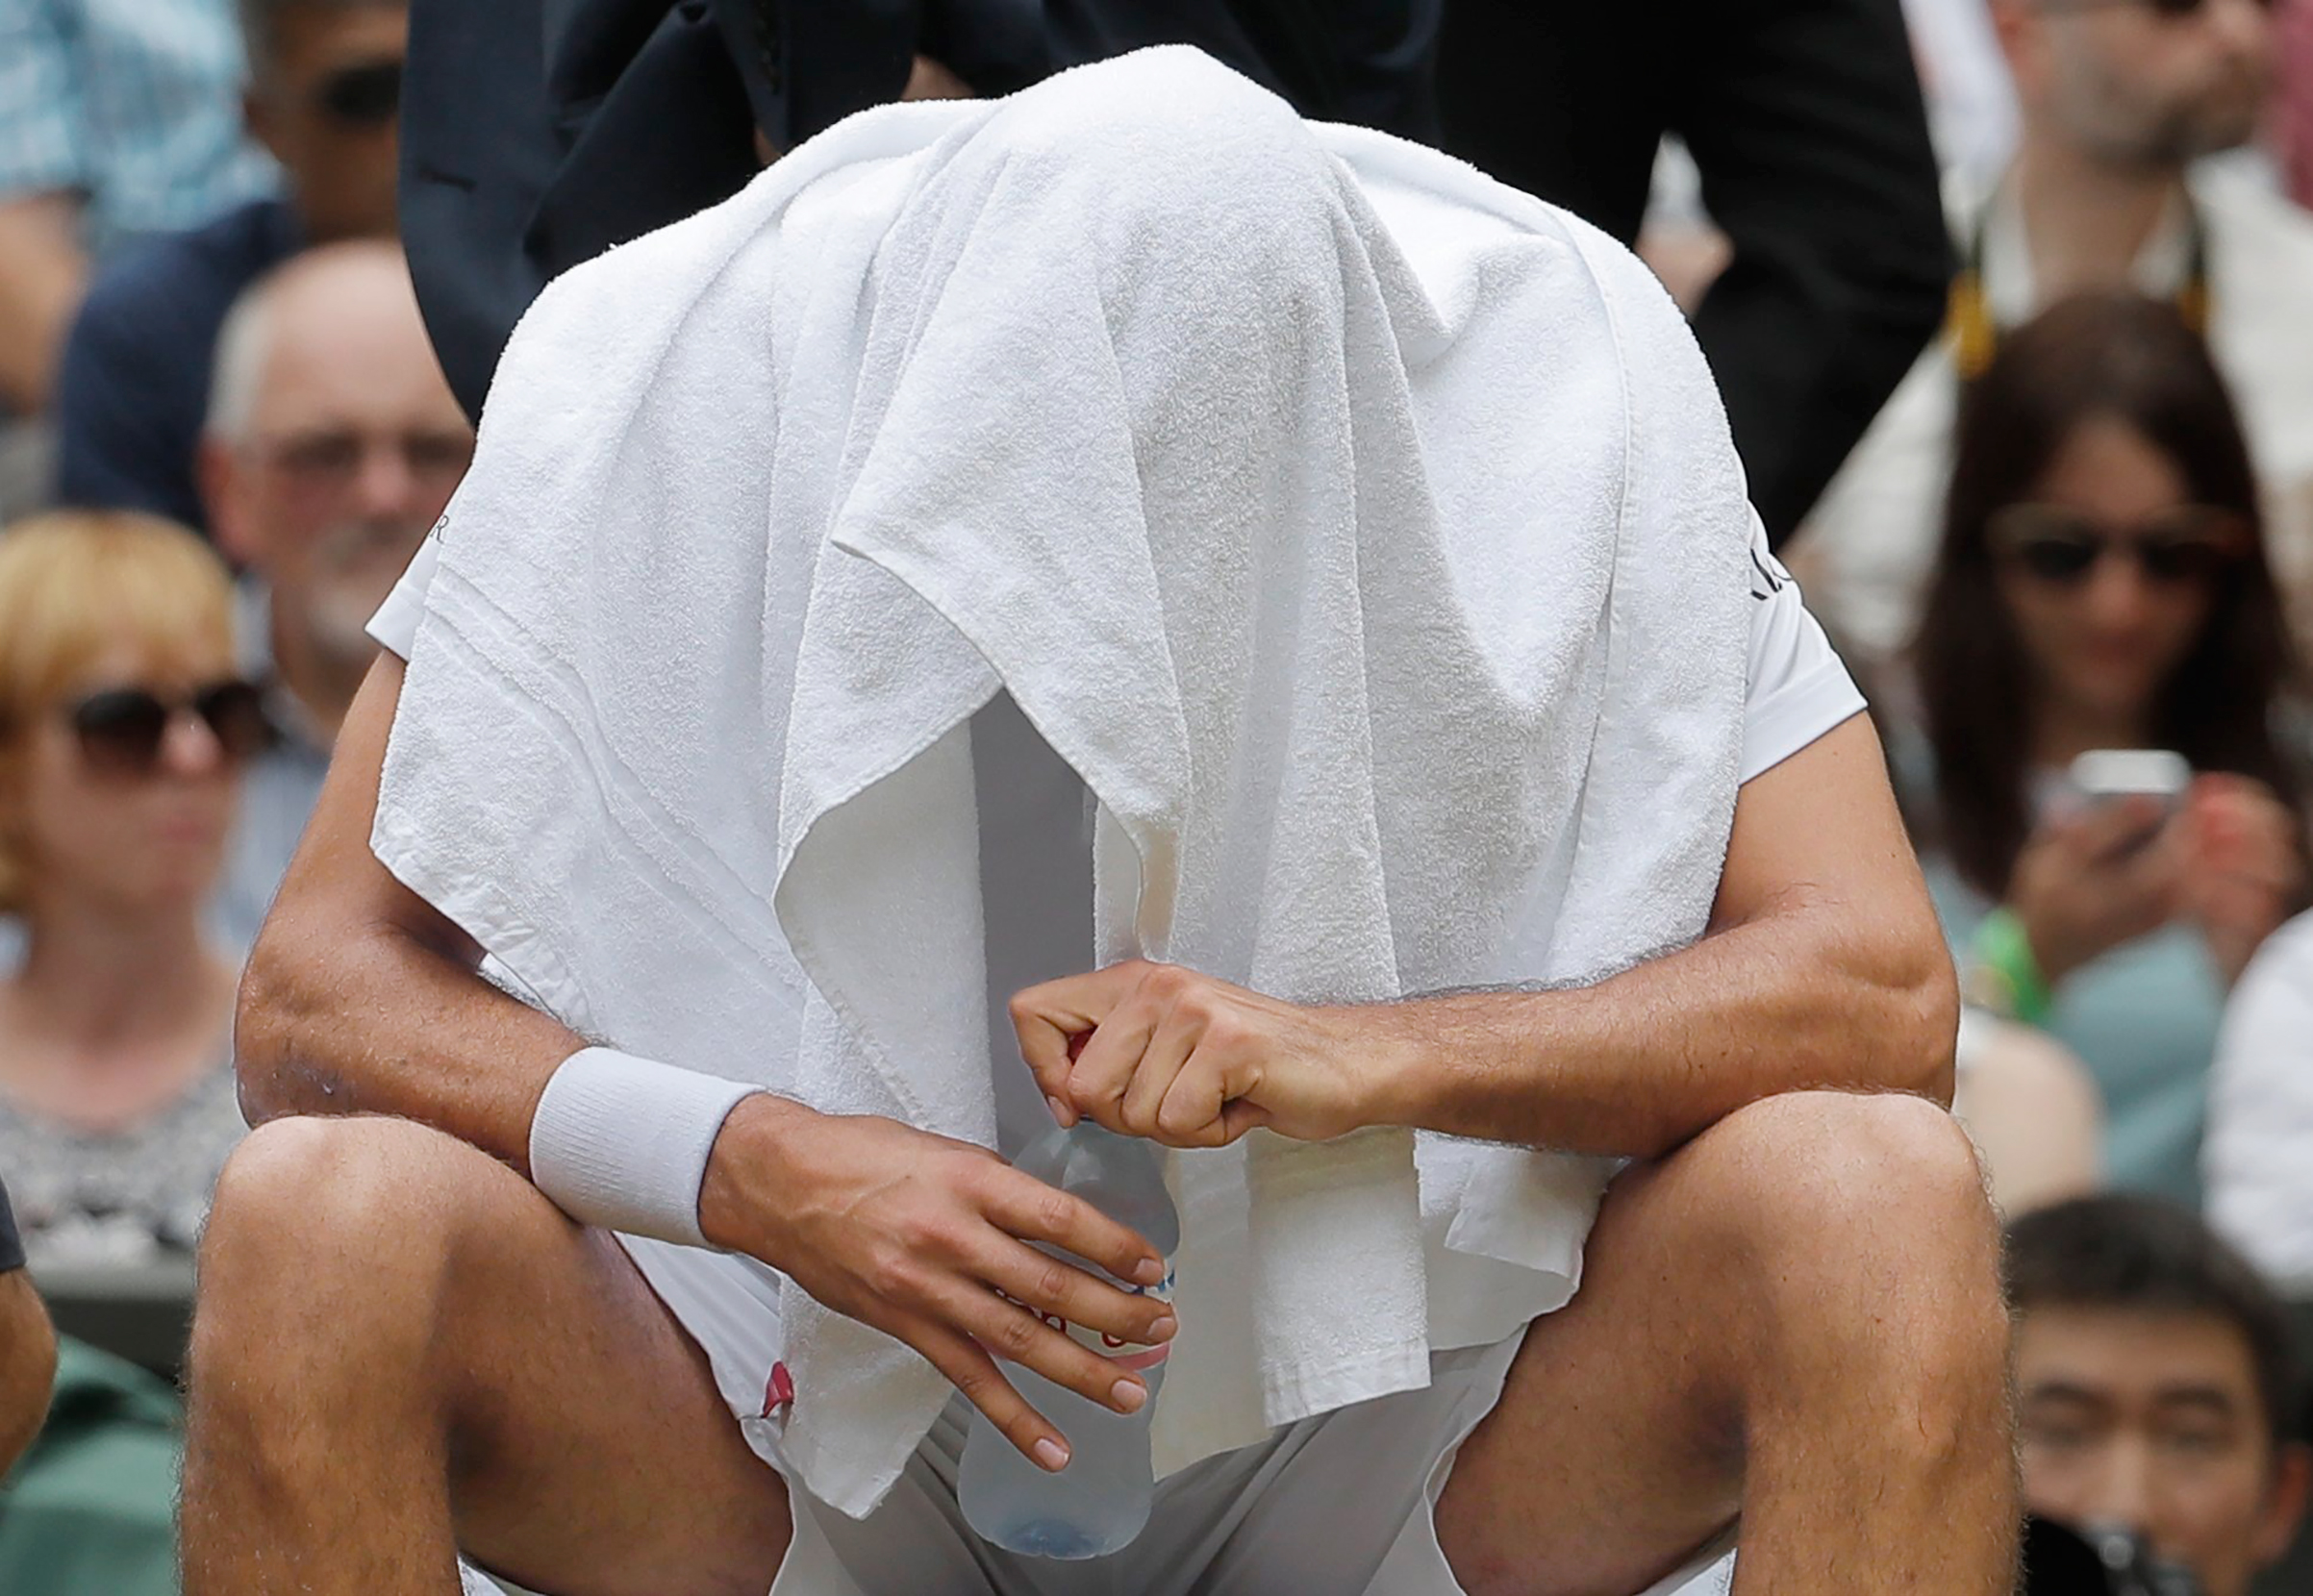 Marin Cilic broke down in tears during his loss to Roger Federer in the July 16 Wimbledon men's final